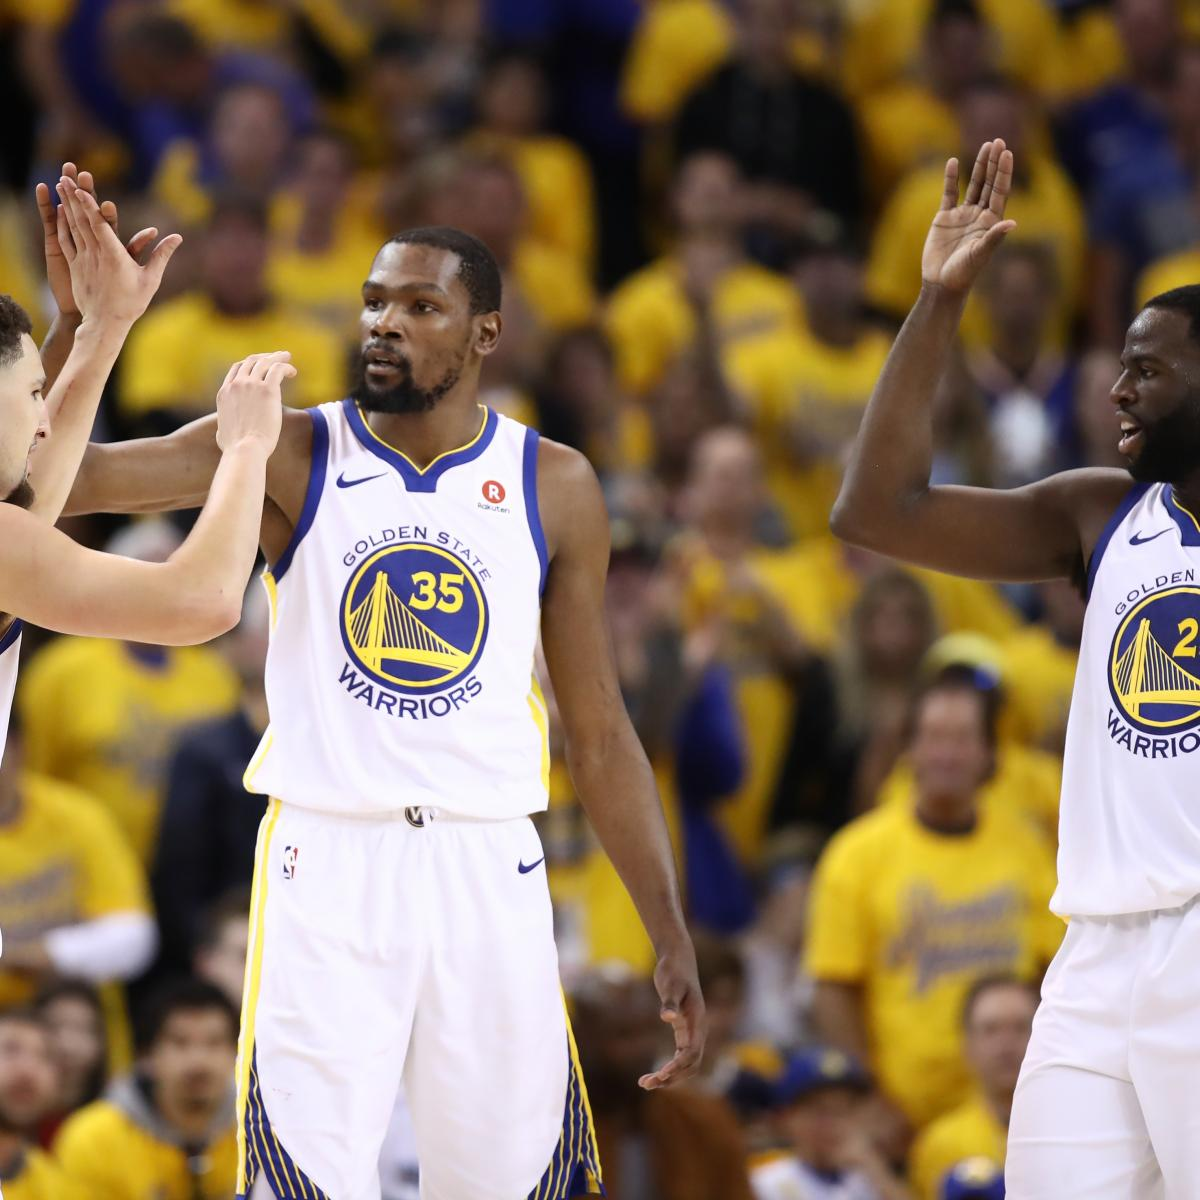 NBA Conference Finals Matchups Both Go 7 Games for 1st Time Since 1979